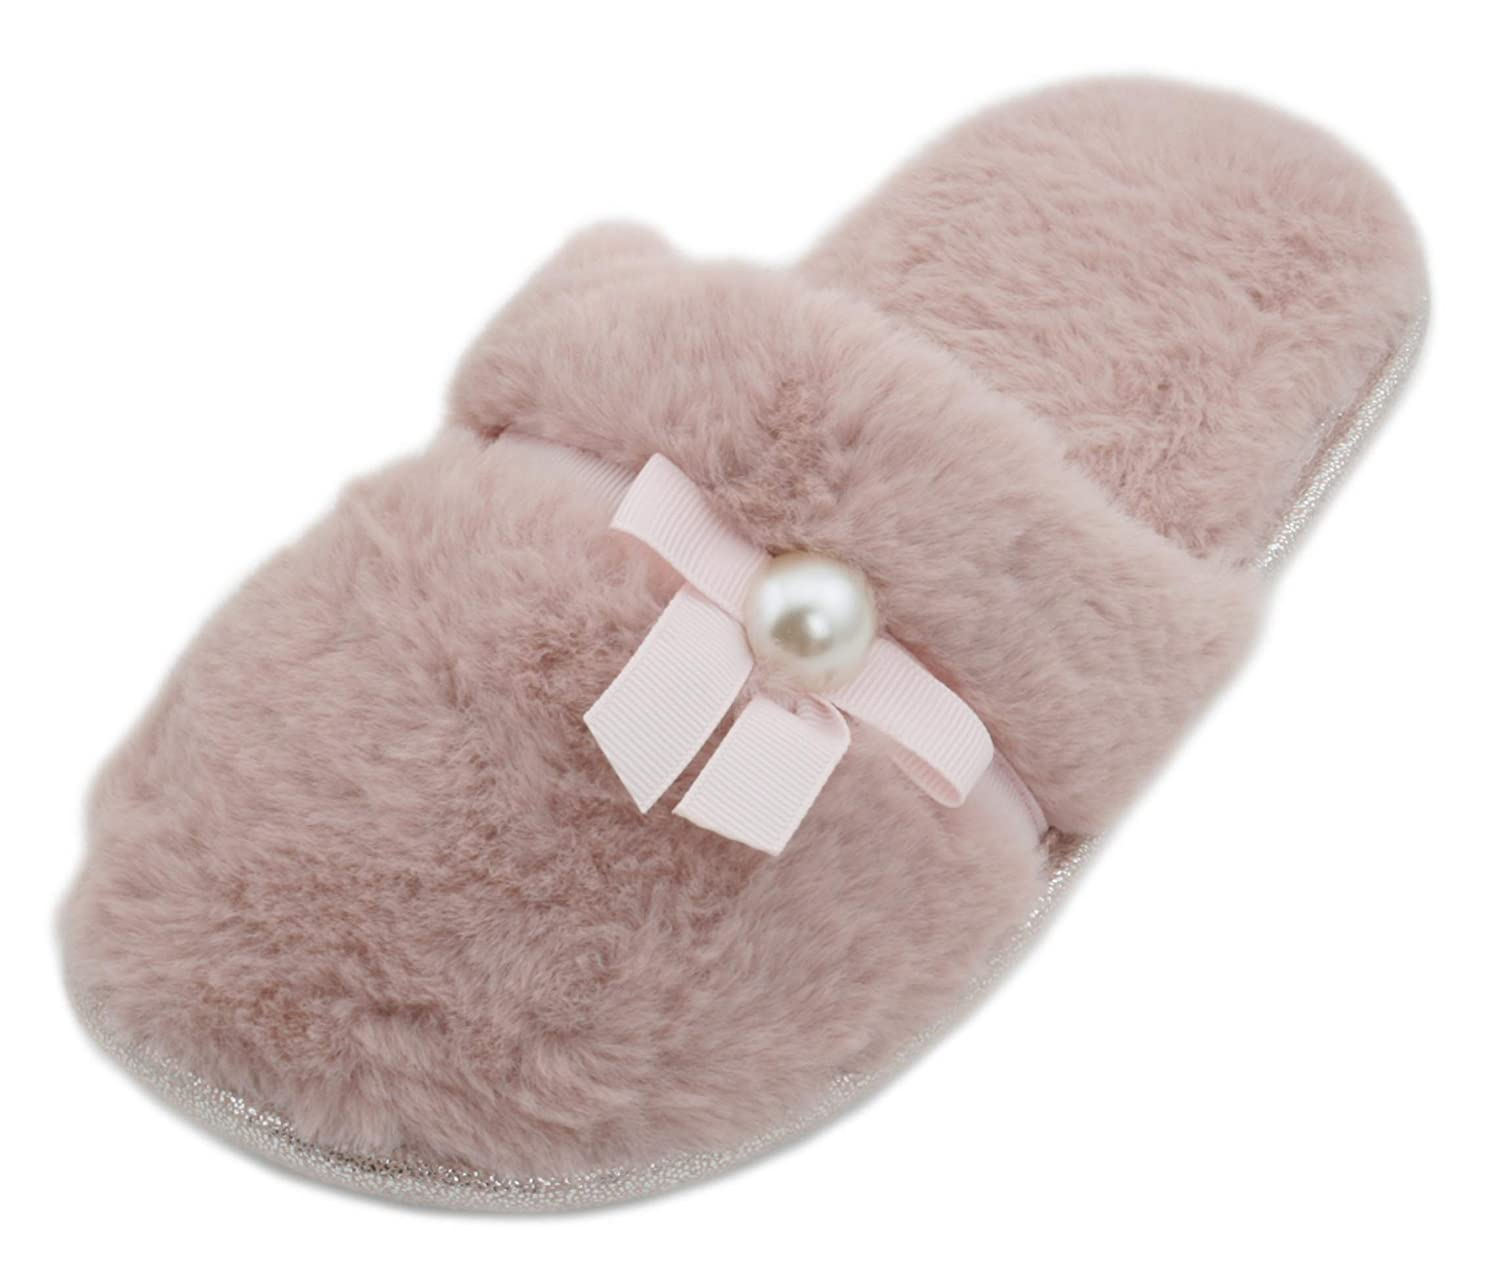 SlumberzzZ , B079QKWNP8 Mules Mules , Femme Rose 77a1579 - fast-weightloss-diet.space